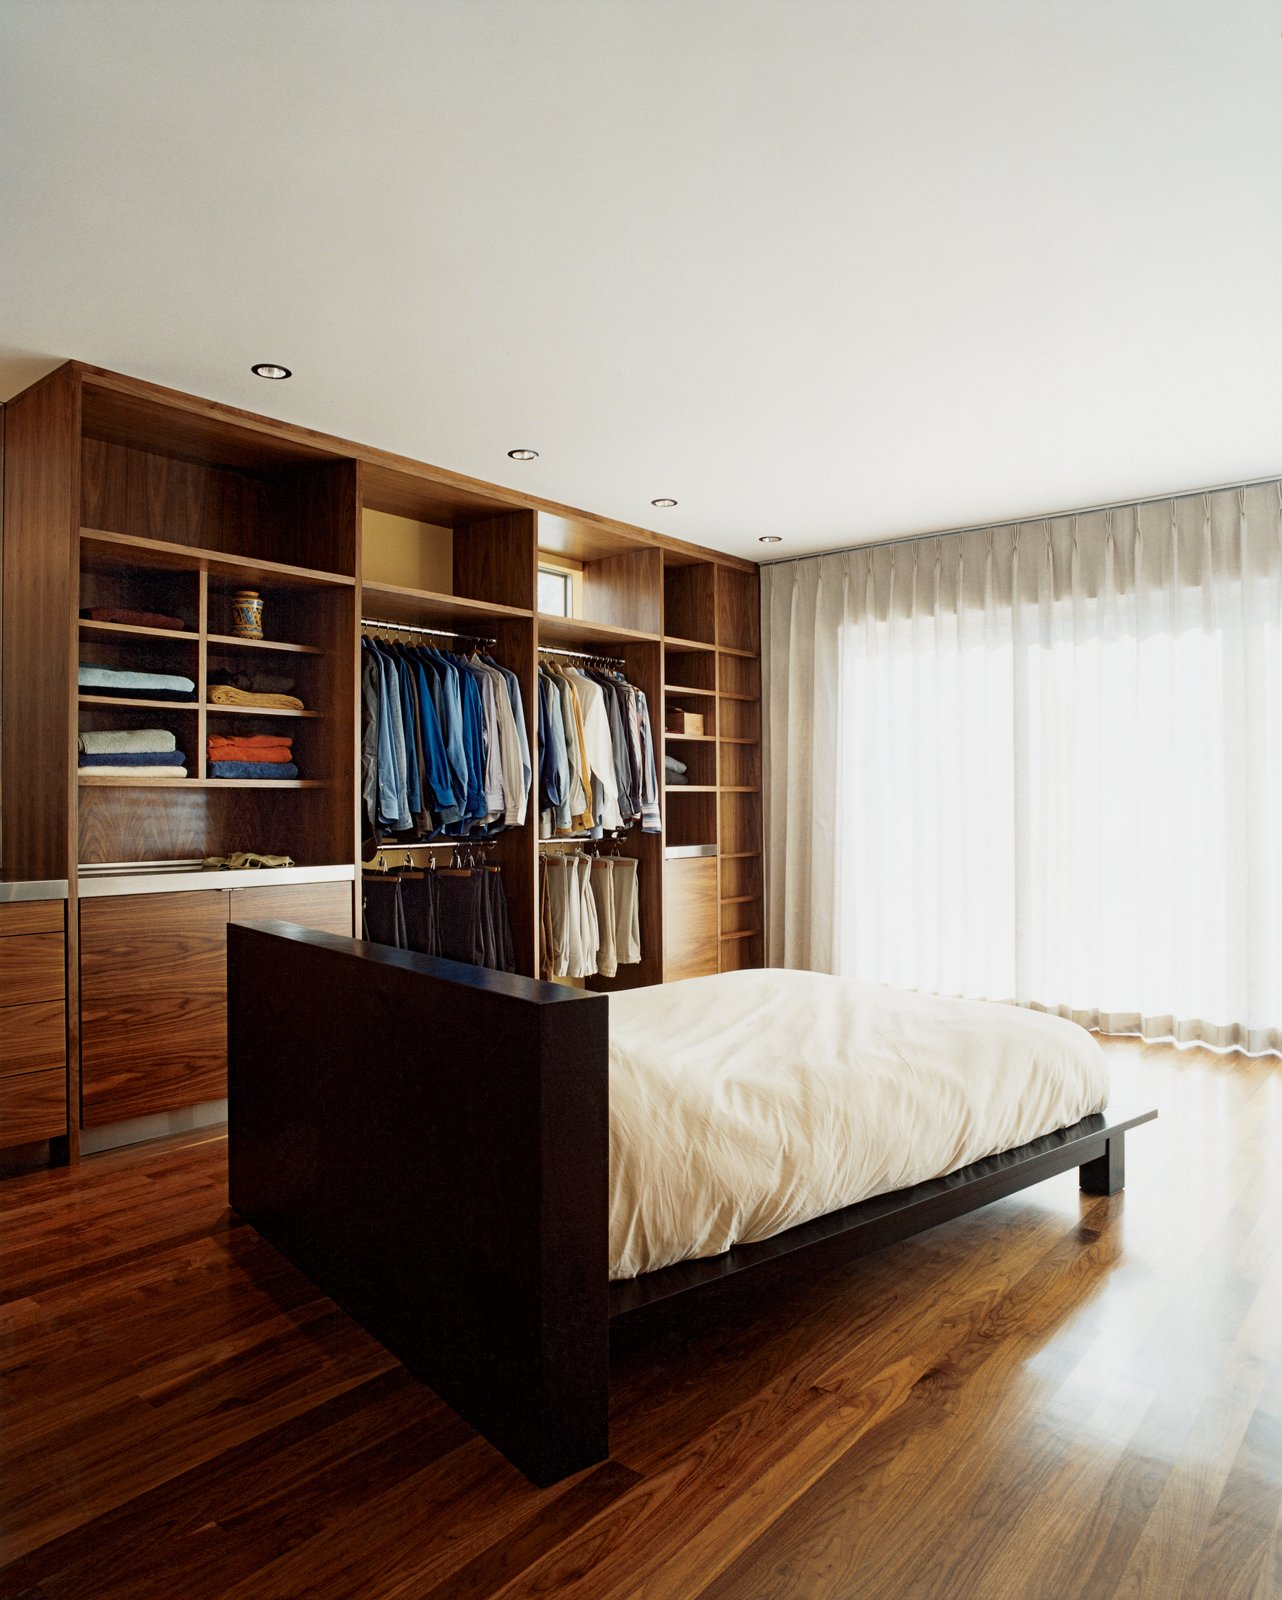 """The master bedroom.  """"The small size of the home inspired me to design it as an  urban retreat for casual living based on radical simplicity,"""" says architect Cass Calder Smith."""